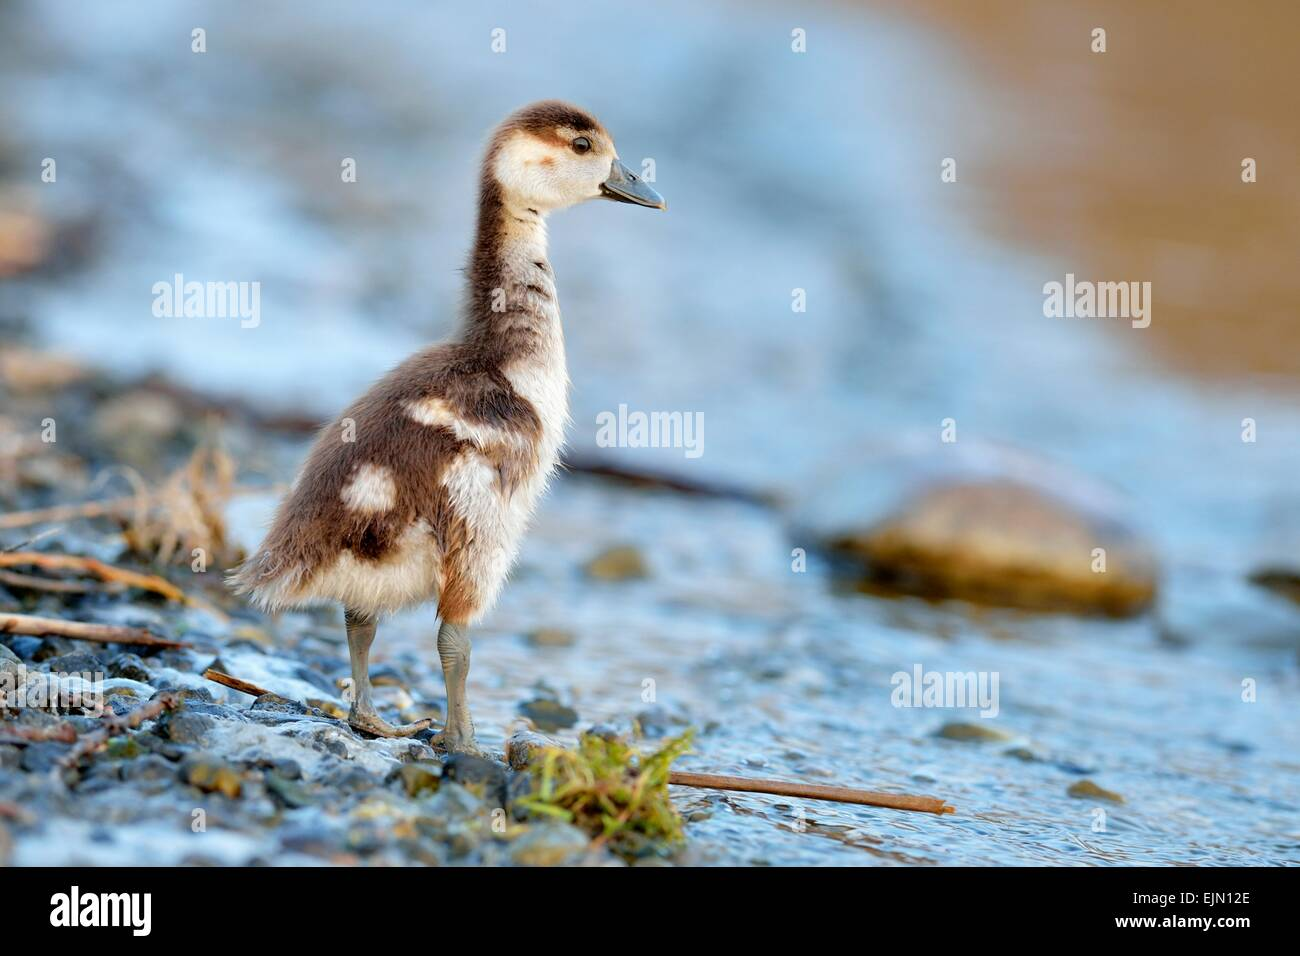 Egyptian goose (Alopochen aegyptiacus) chick, by the water, Zug, Canton of Zug, Switzerland - Stock Image